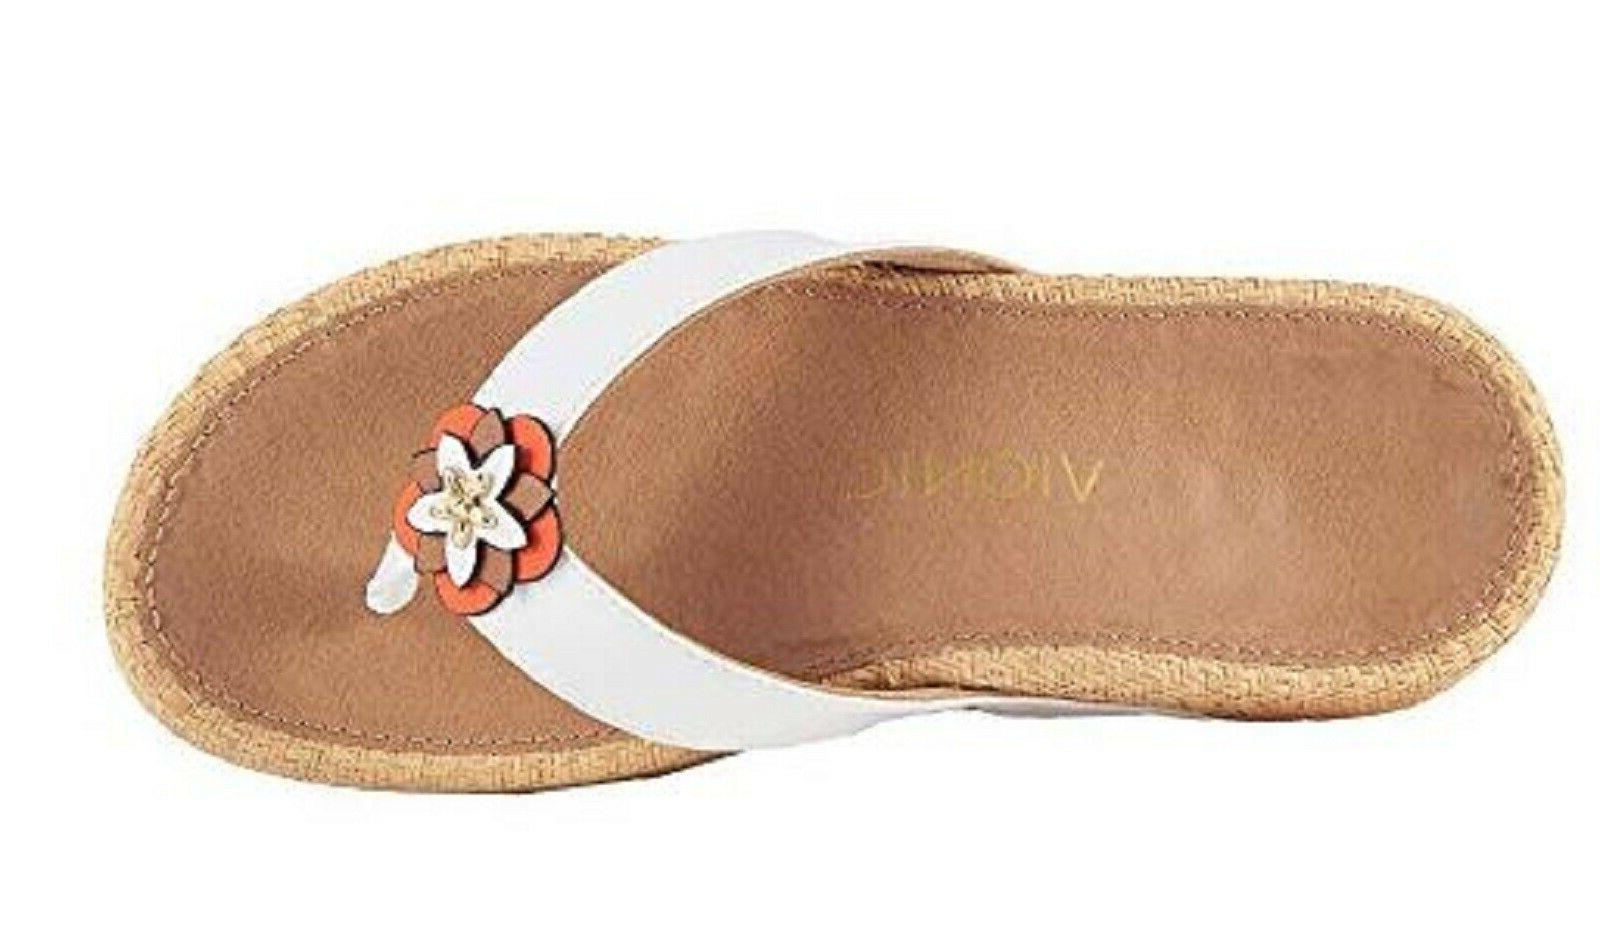 Vionic PACIFIC MIMI Embellished Leather Sandals WHITE 9 M